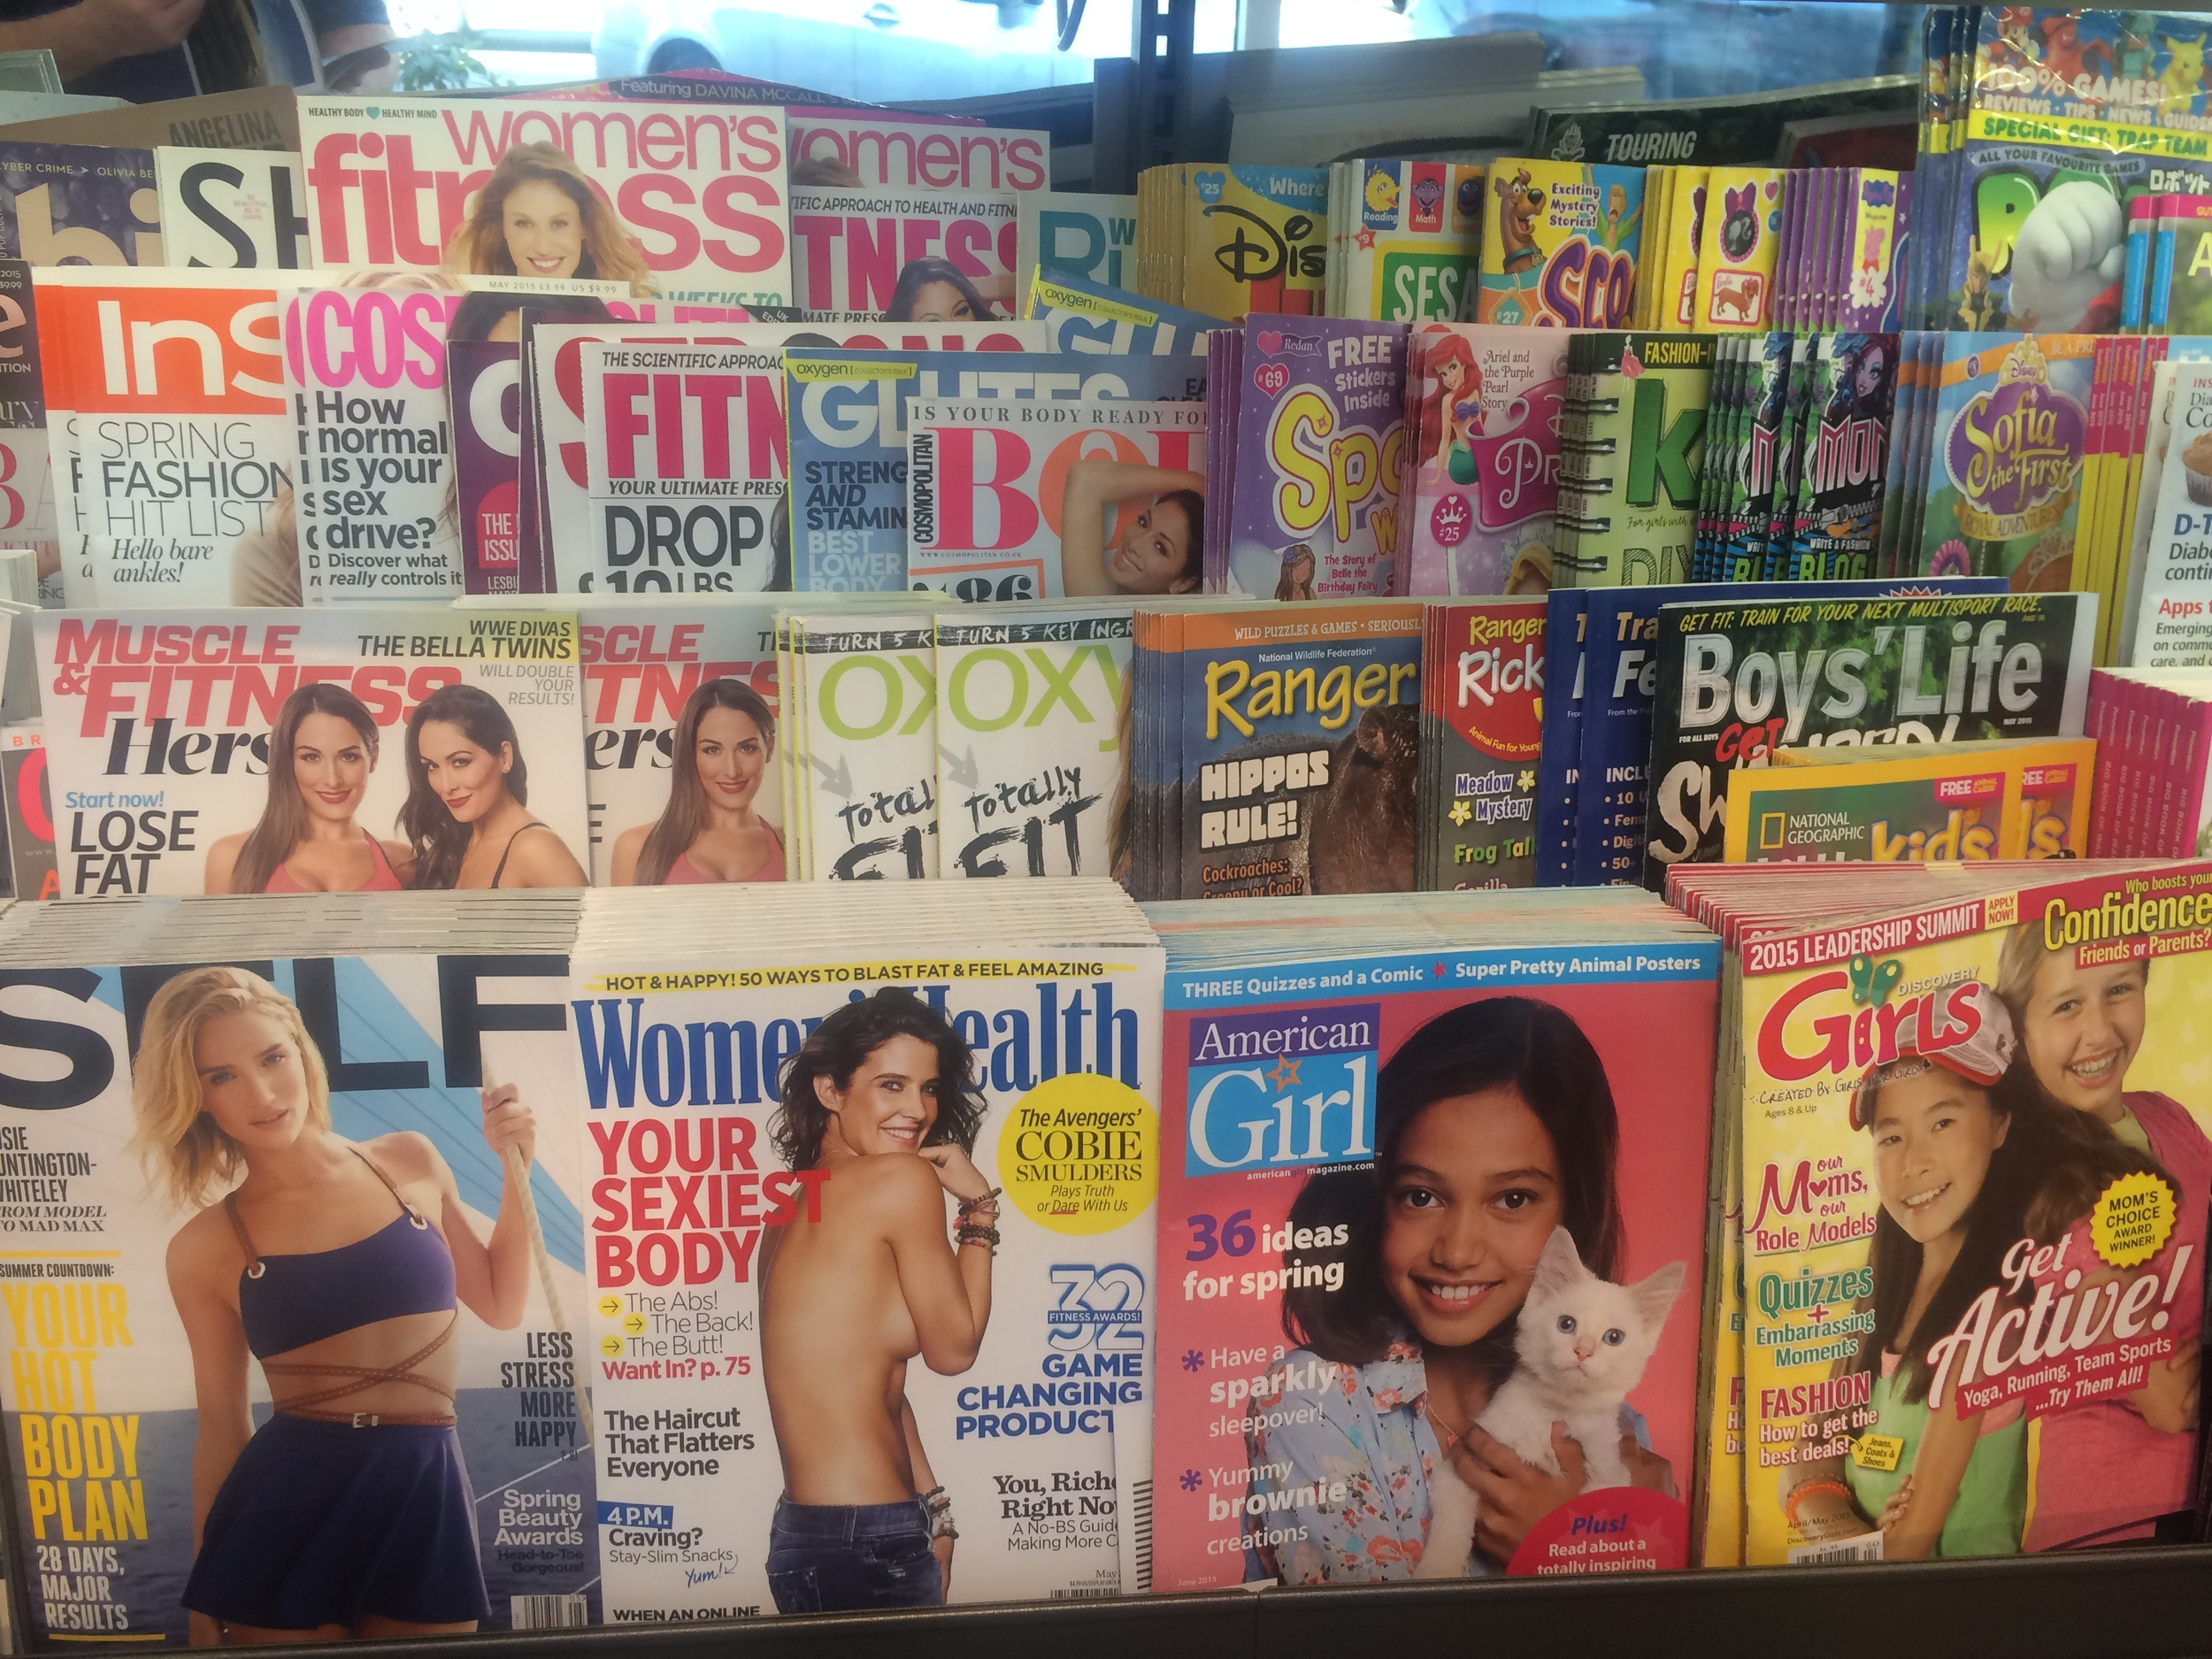 Image: Magazines on display at a Portland, OR bookstore. Women's health and fitness magazines located next to magazines for young girls.